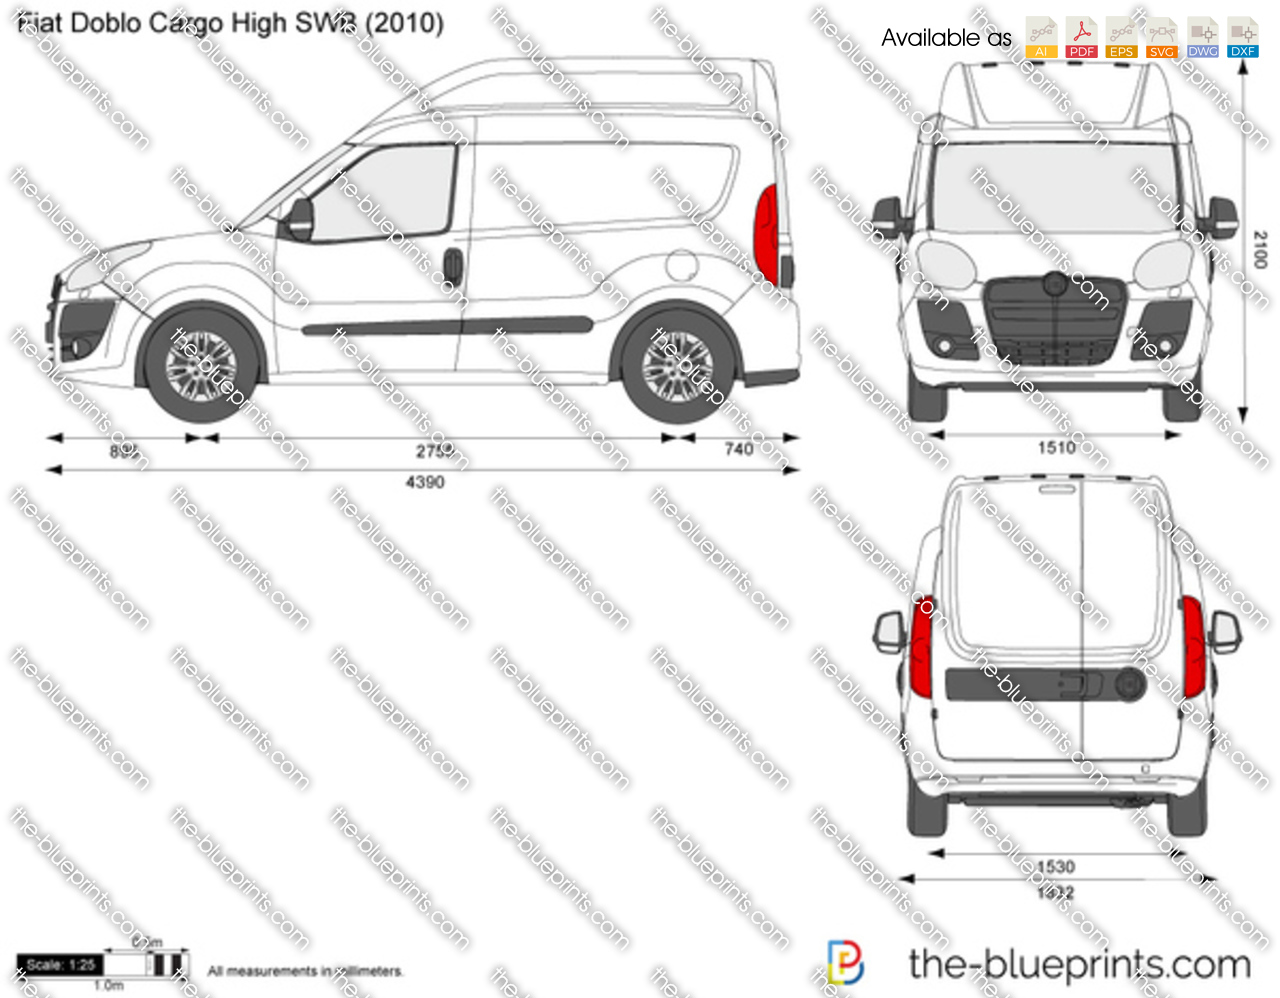 the-blueprints - vector drawing - fiat doblo cargo high swb